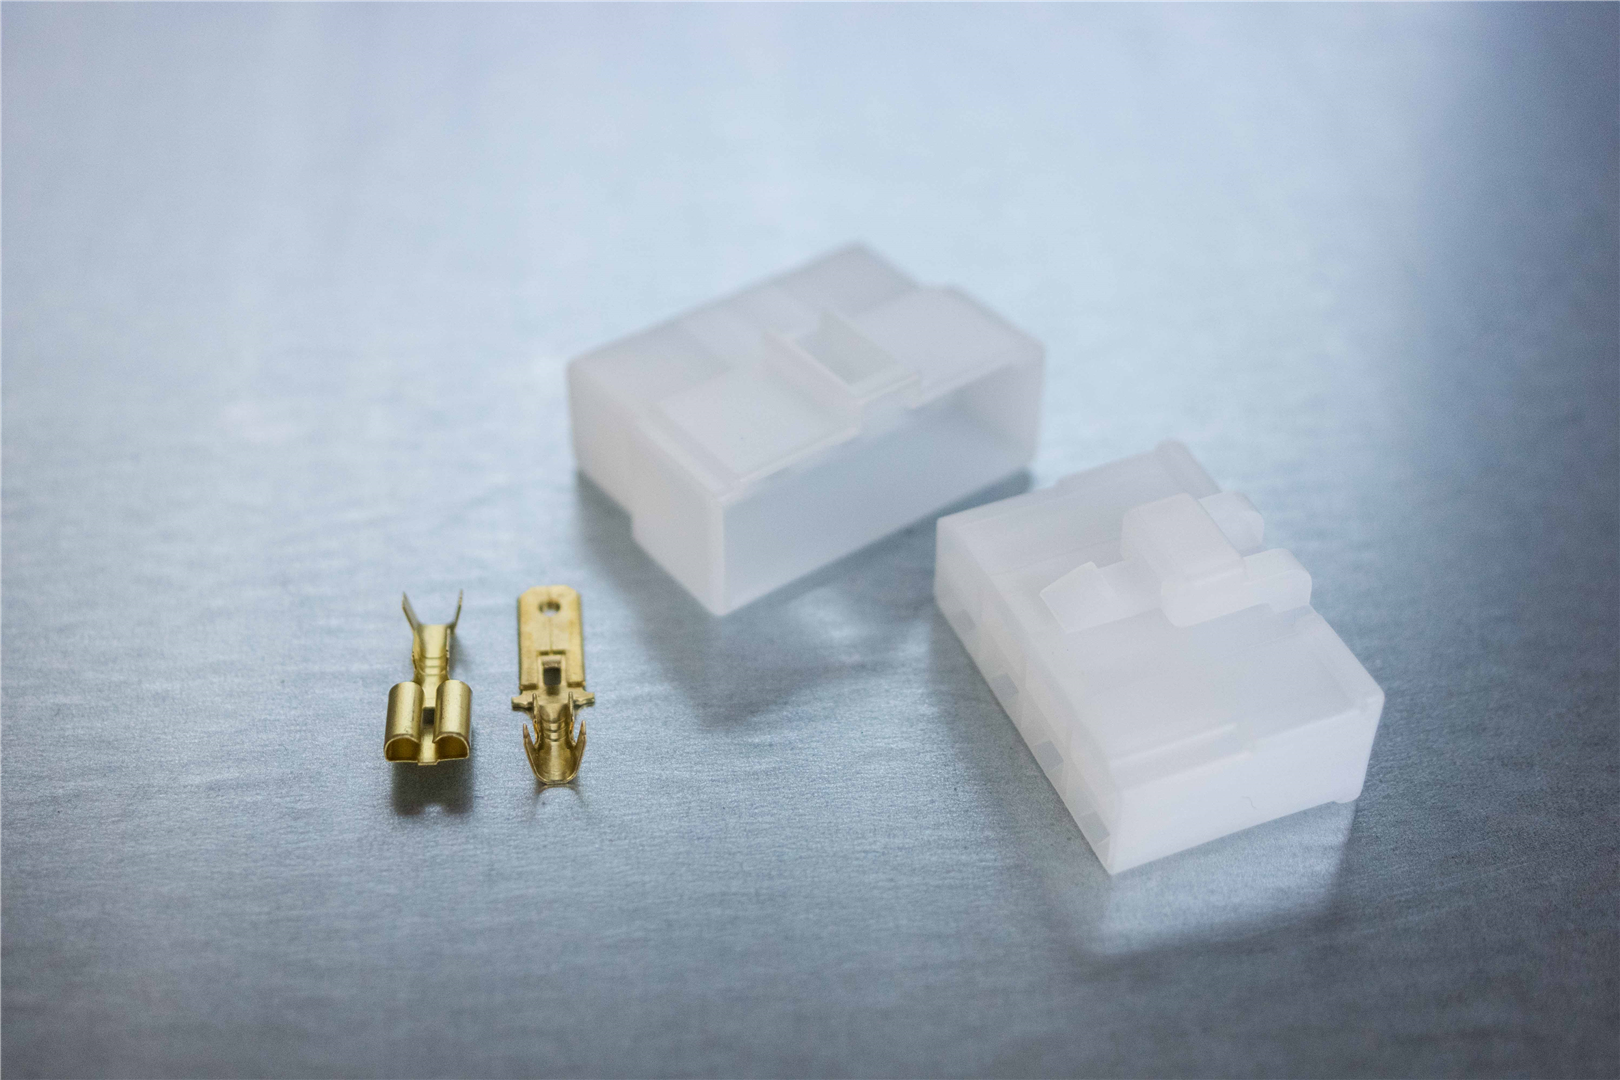 6.3mm 8-pin Latching M/F Nylon Connector